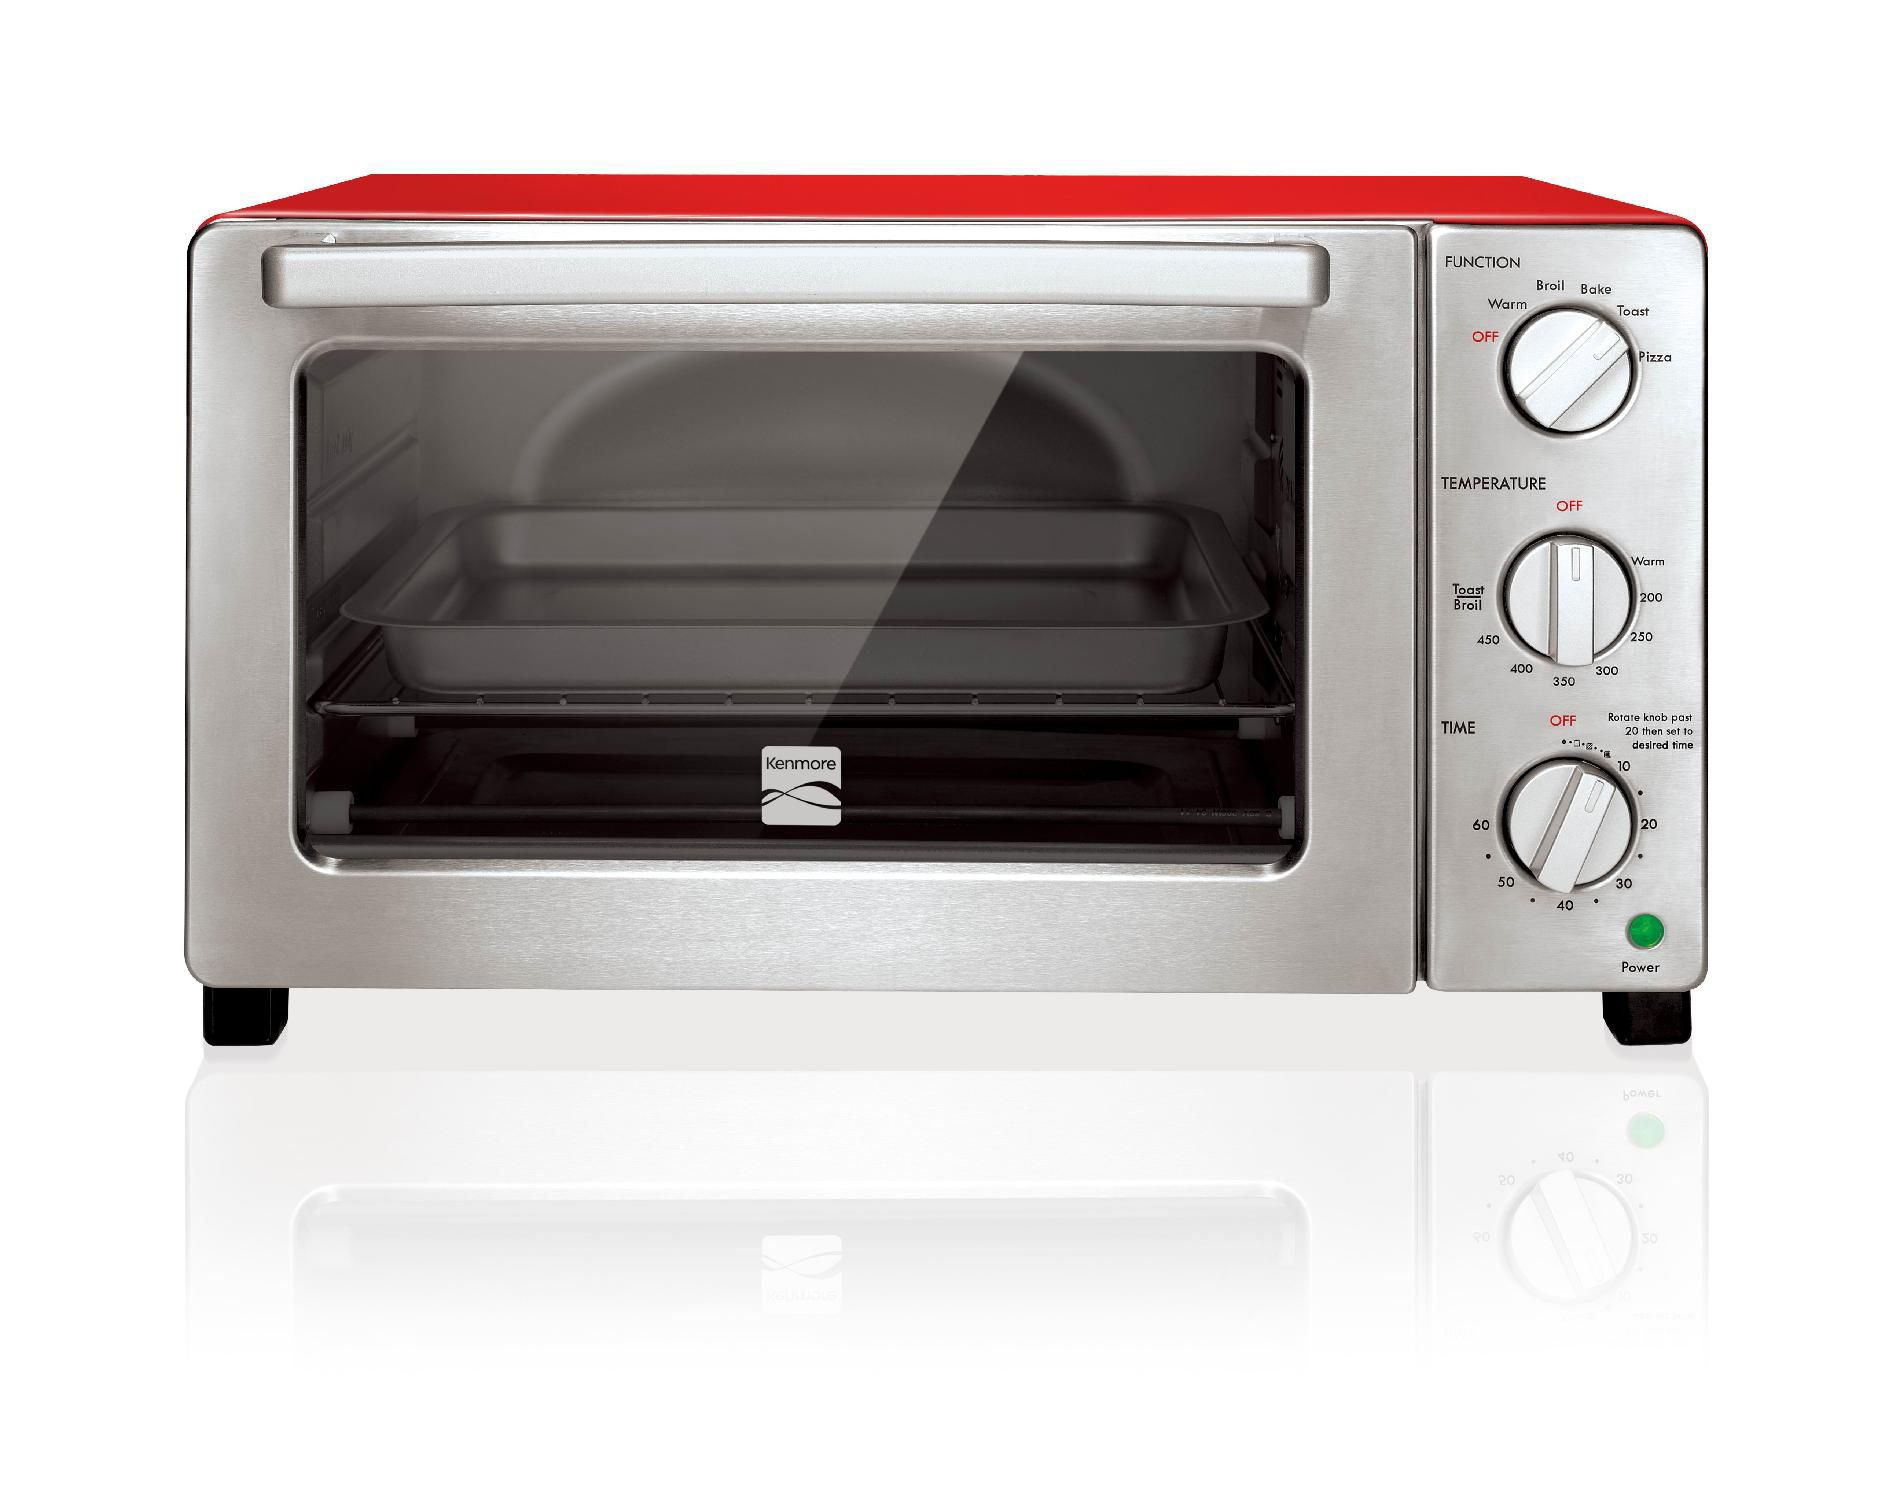 kenmore 4206 6 slice convection toaster